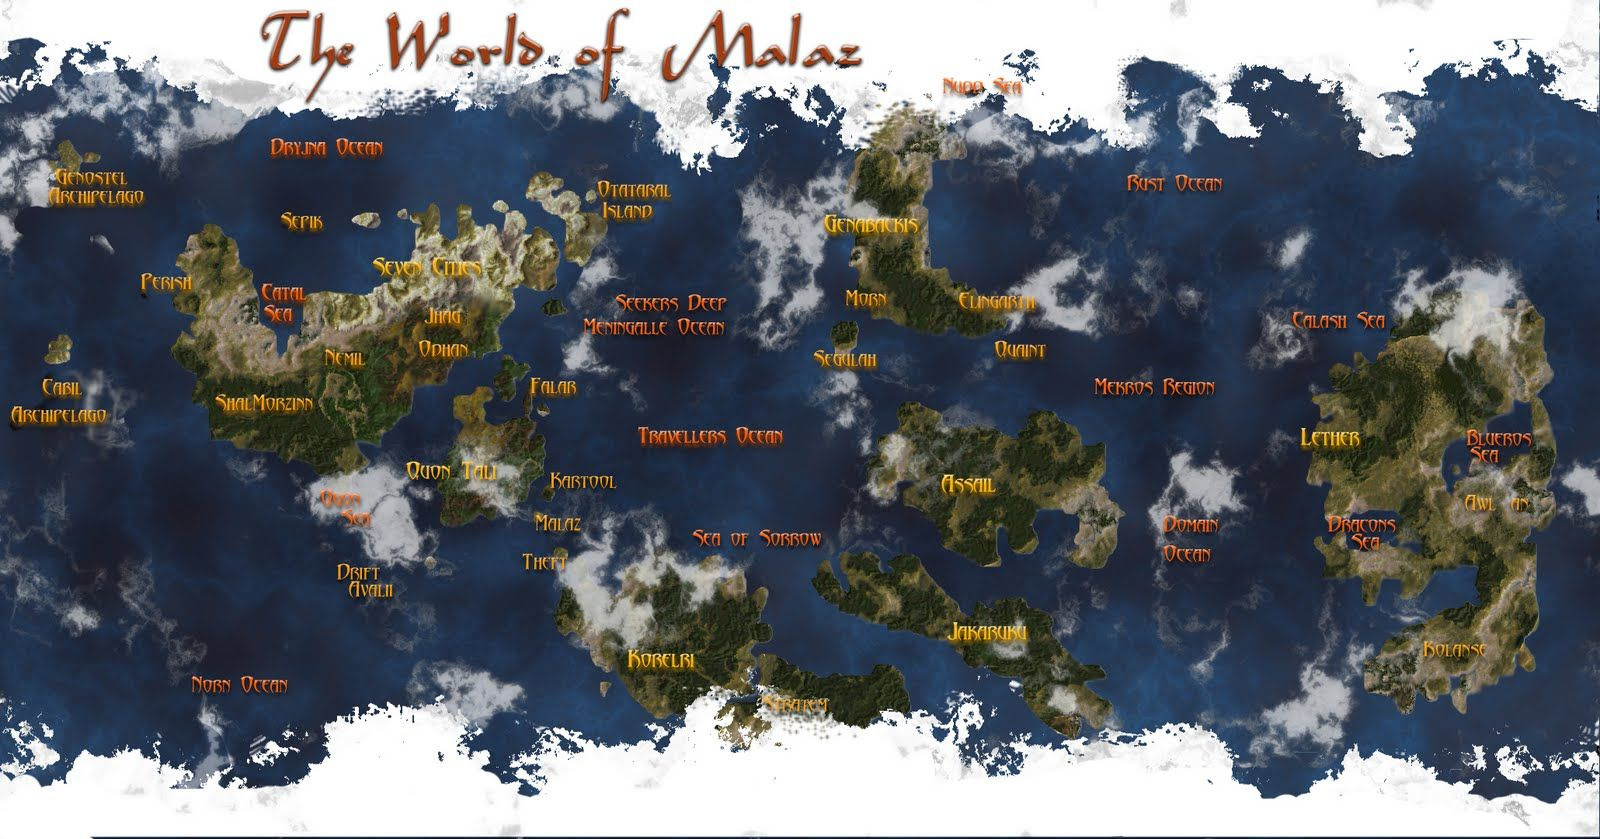 Pin by Craig Scheihing on Gaming | Fantasy books, Fantasy world map